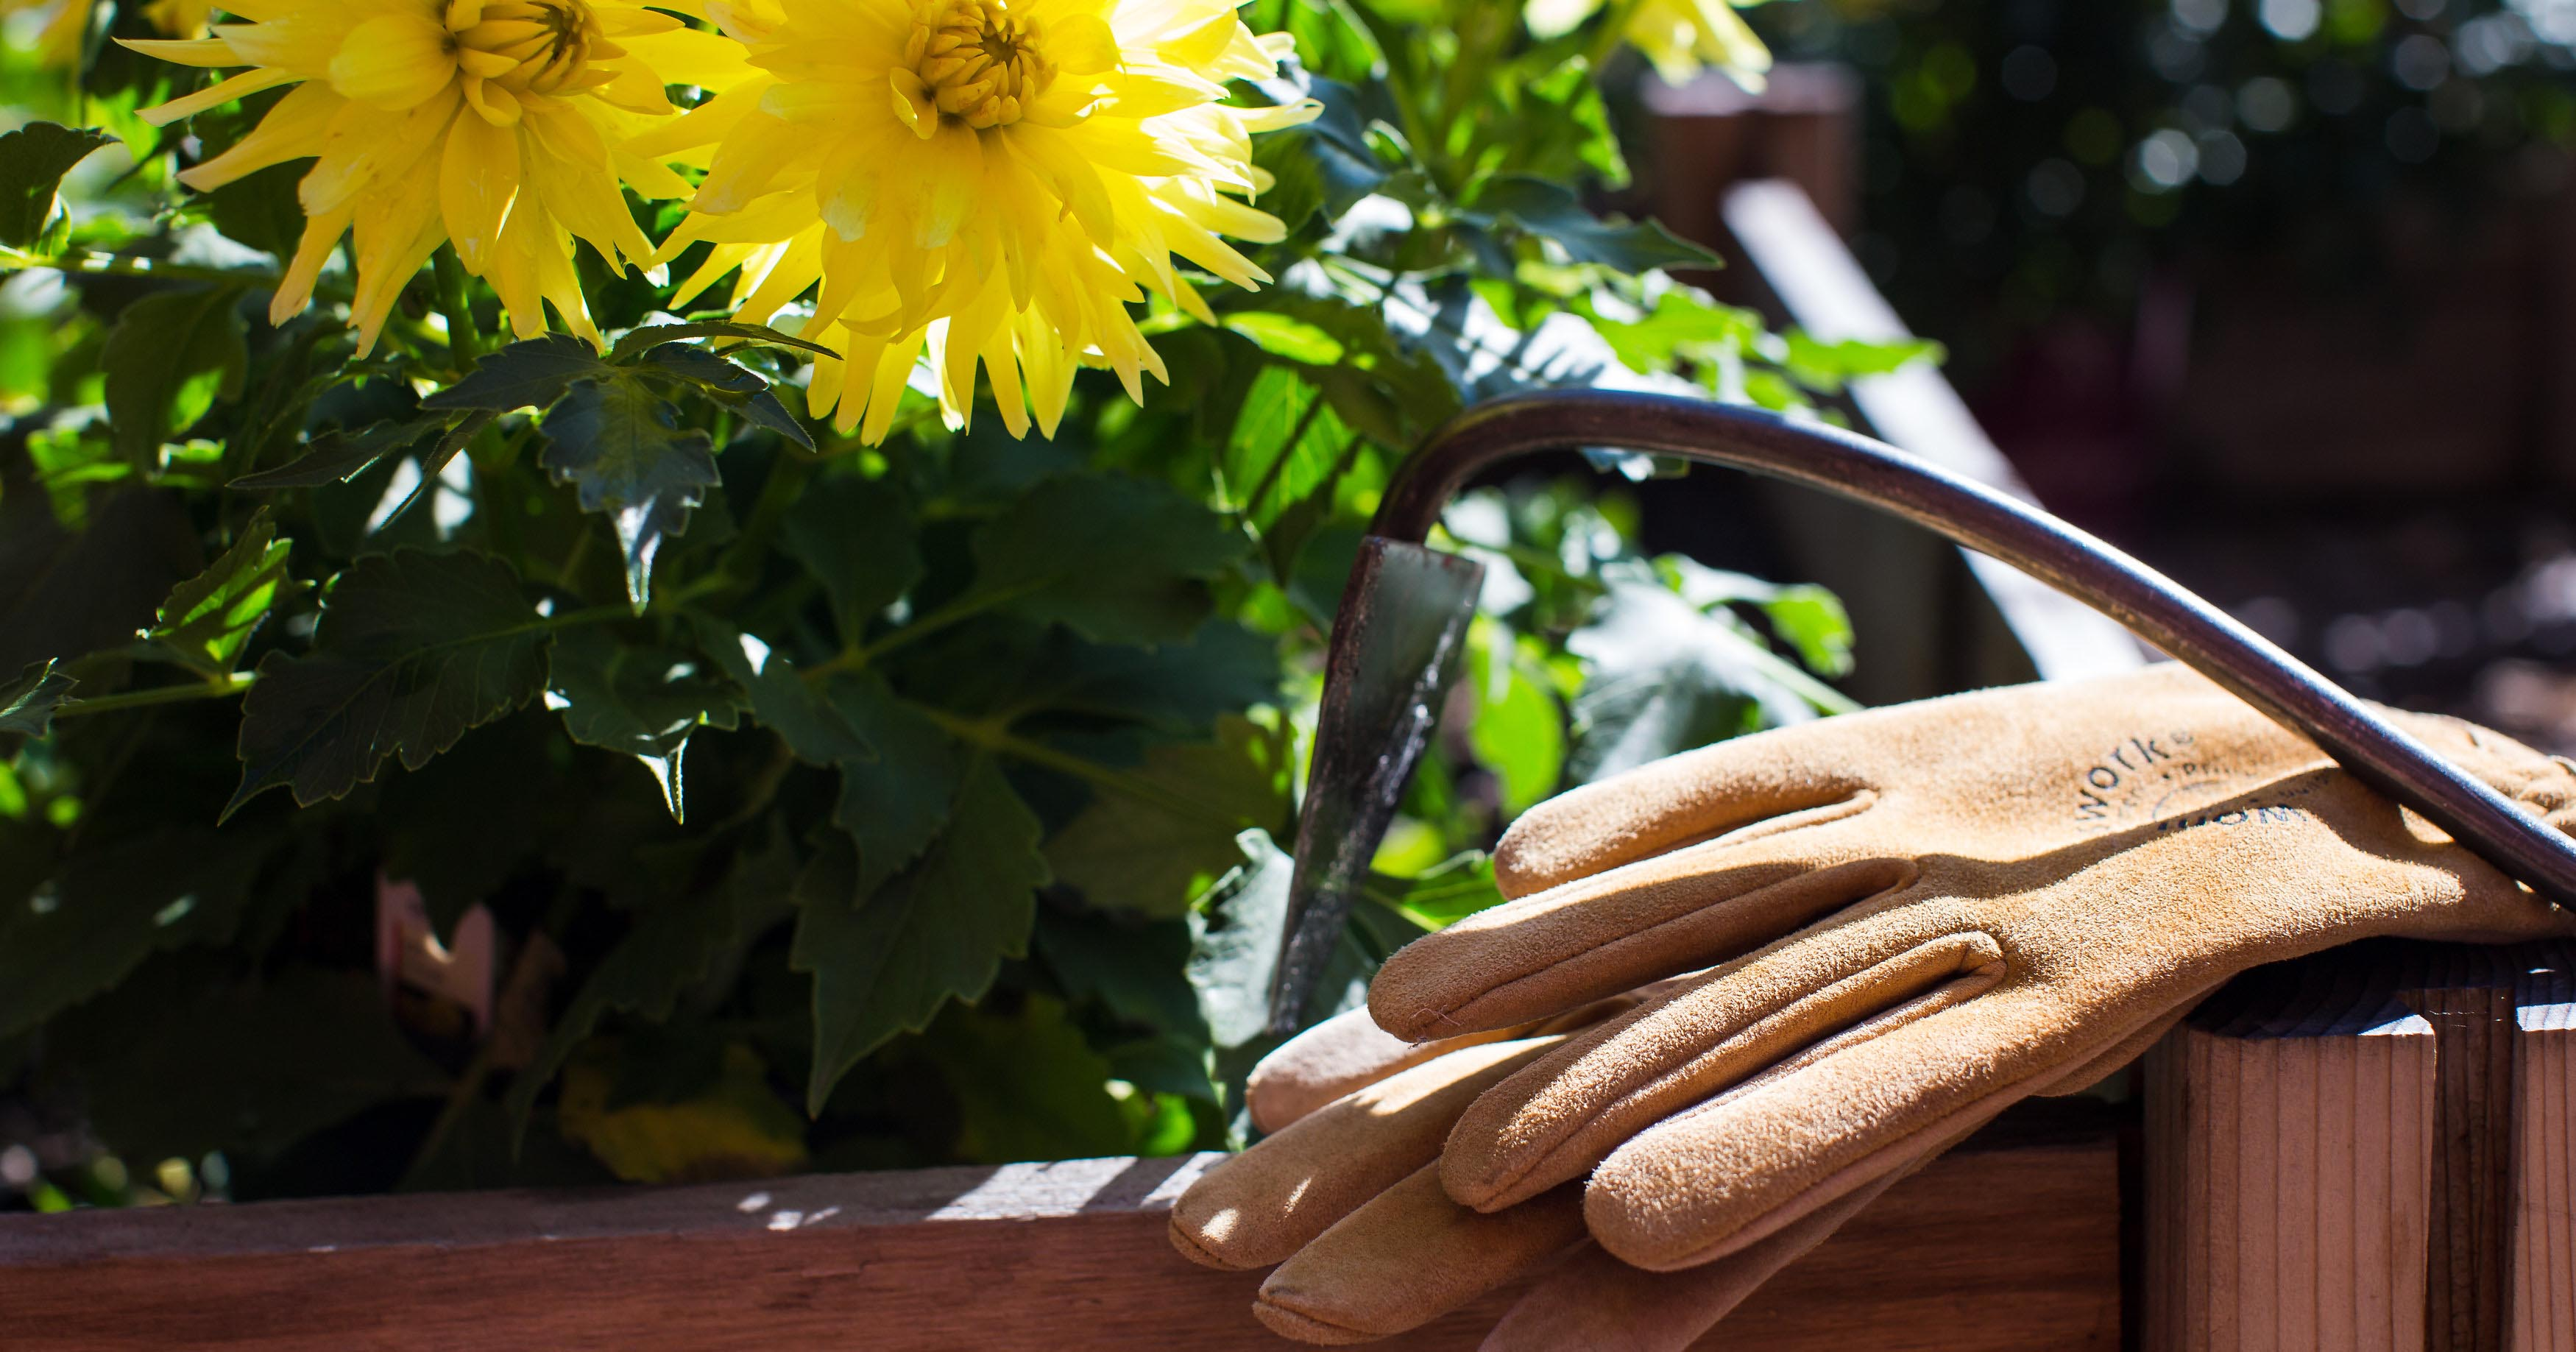 Gardening gloves and yellow flowers